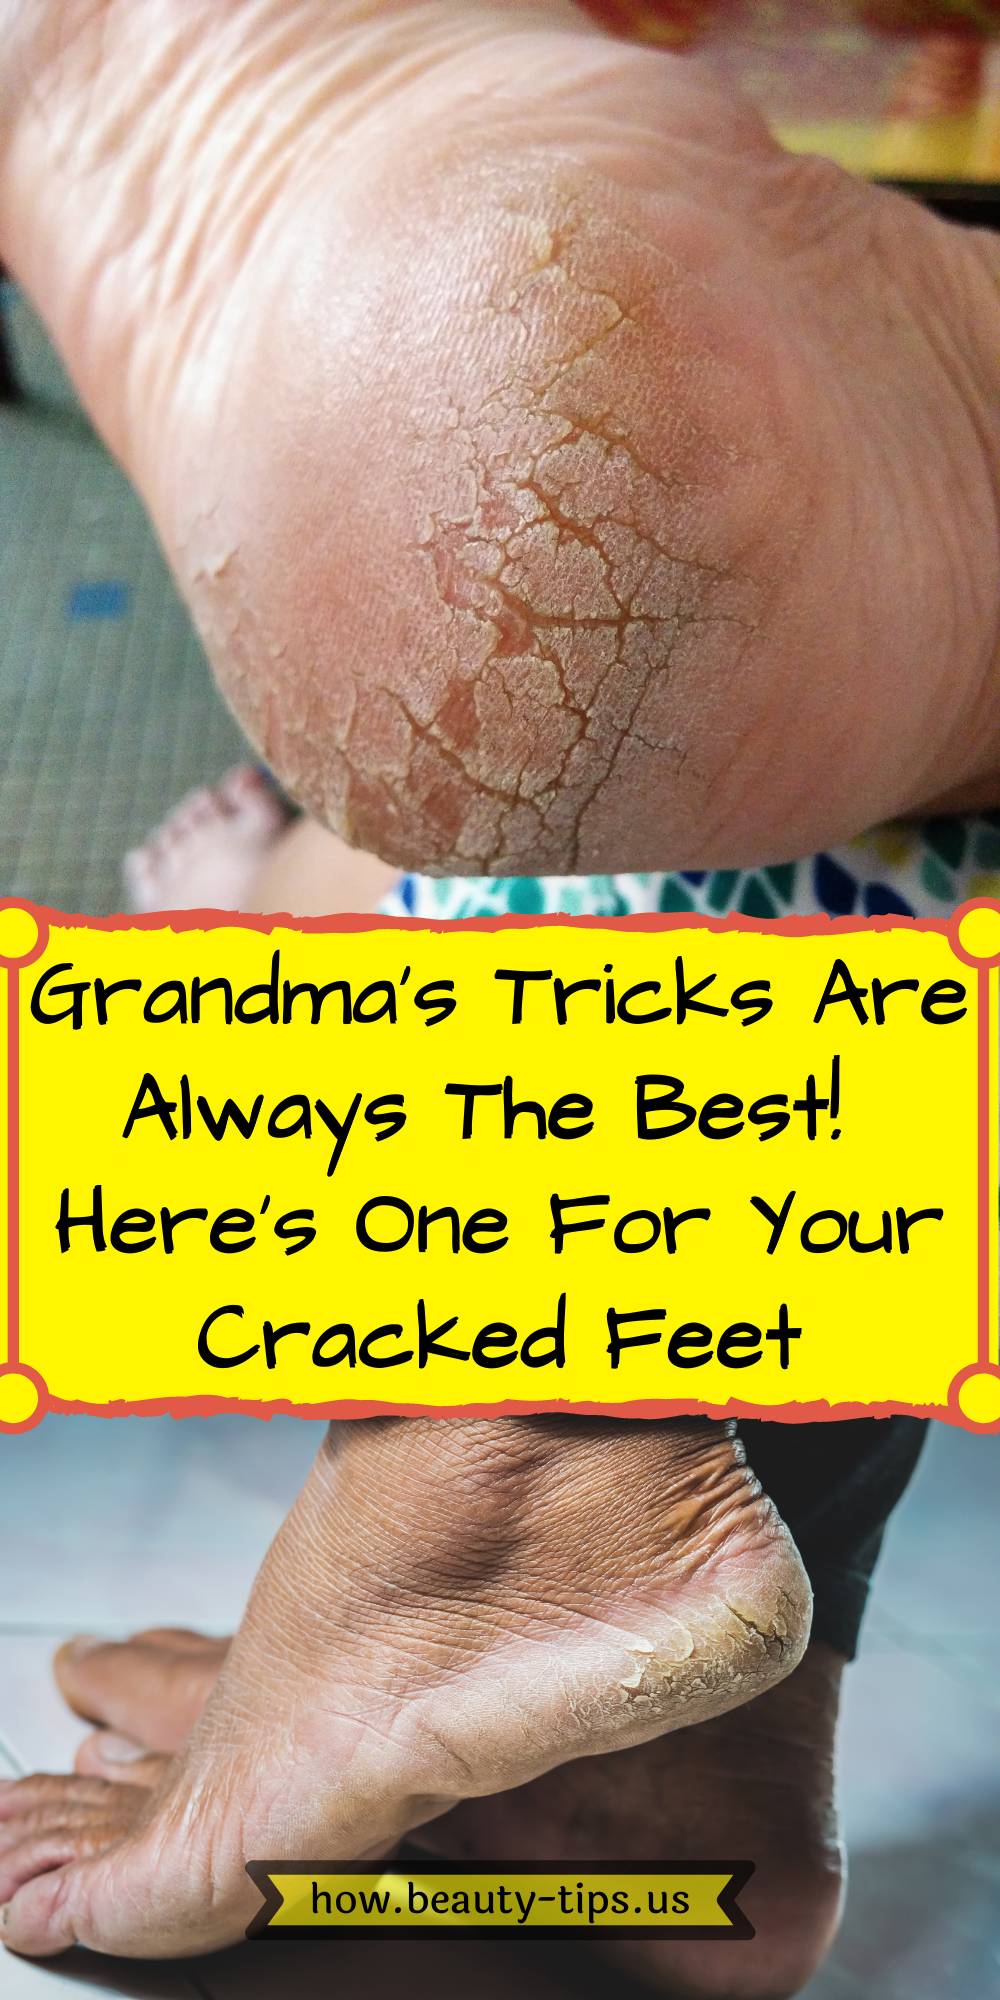 Grandma's Tricks Are Always The Best! Here's One For Your Cracked Feet